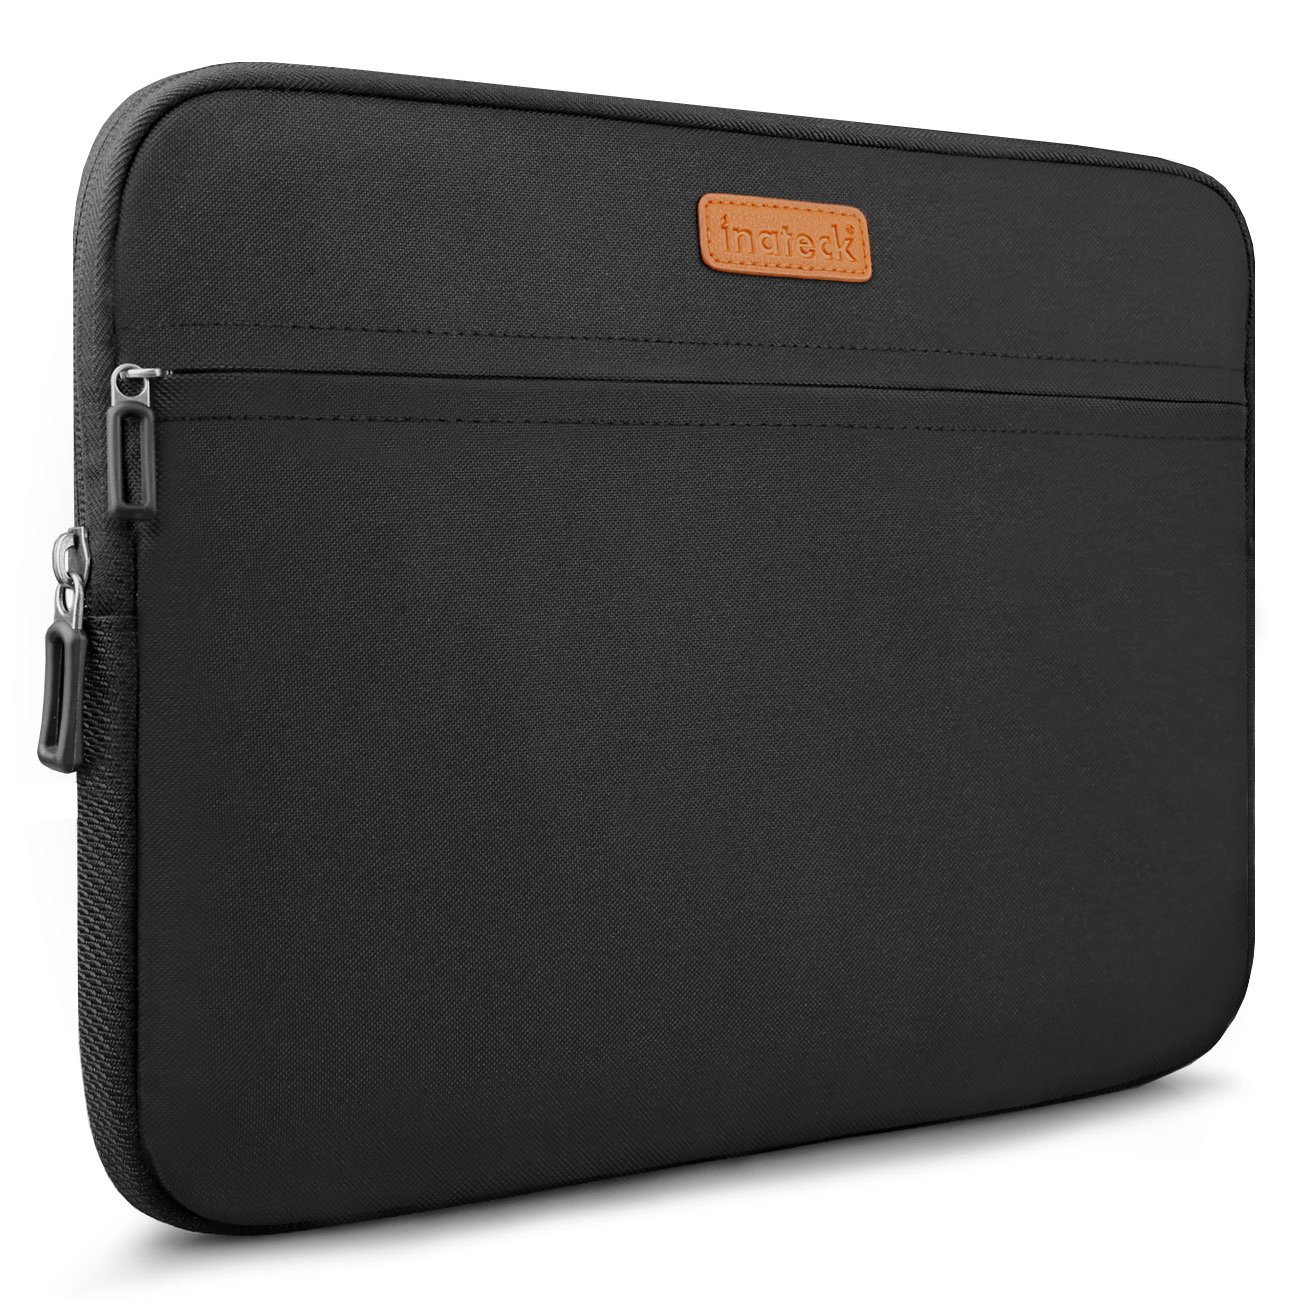 Inateck 13-13.3 MacBook Air/ Pro Retina Sleeve Carrying Case Cover Protective Bag, Water Repellent - Black (LC1300B)